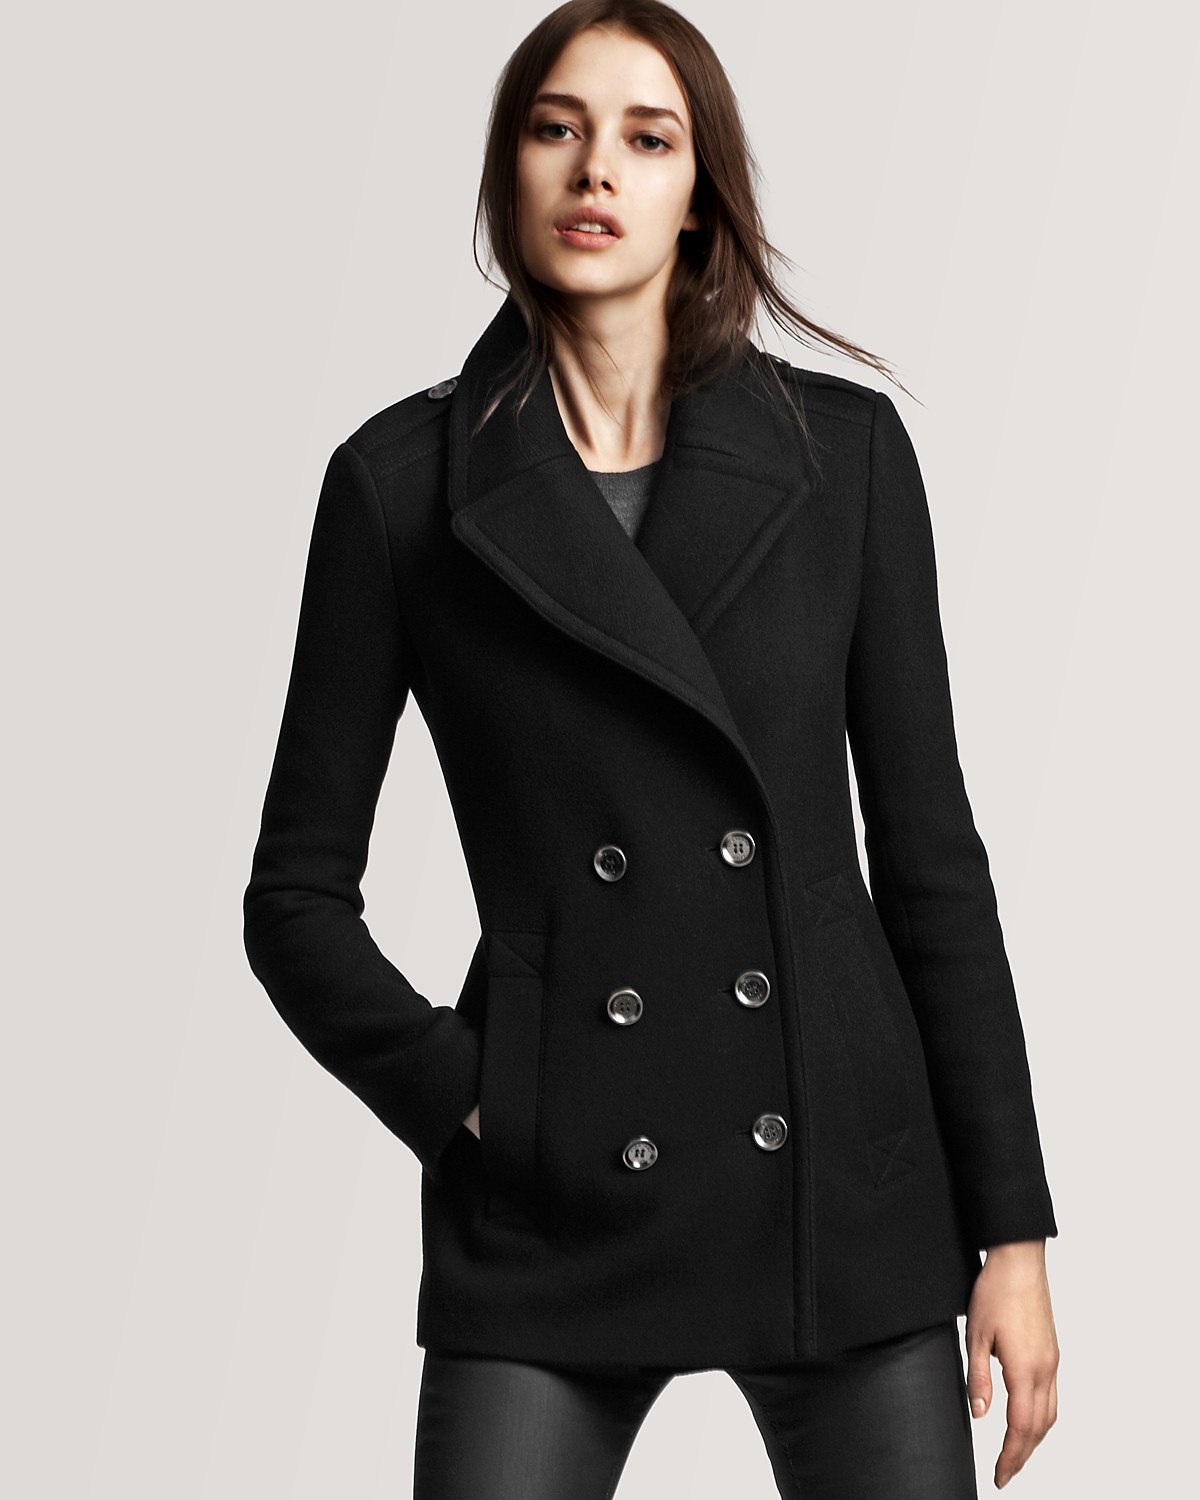 Find great deals on eBay for girls pea coat. Shop with confidence.